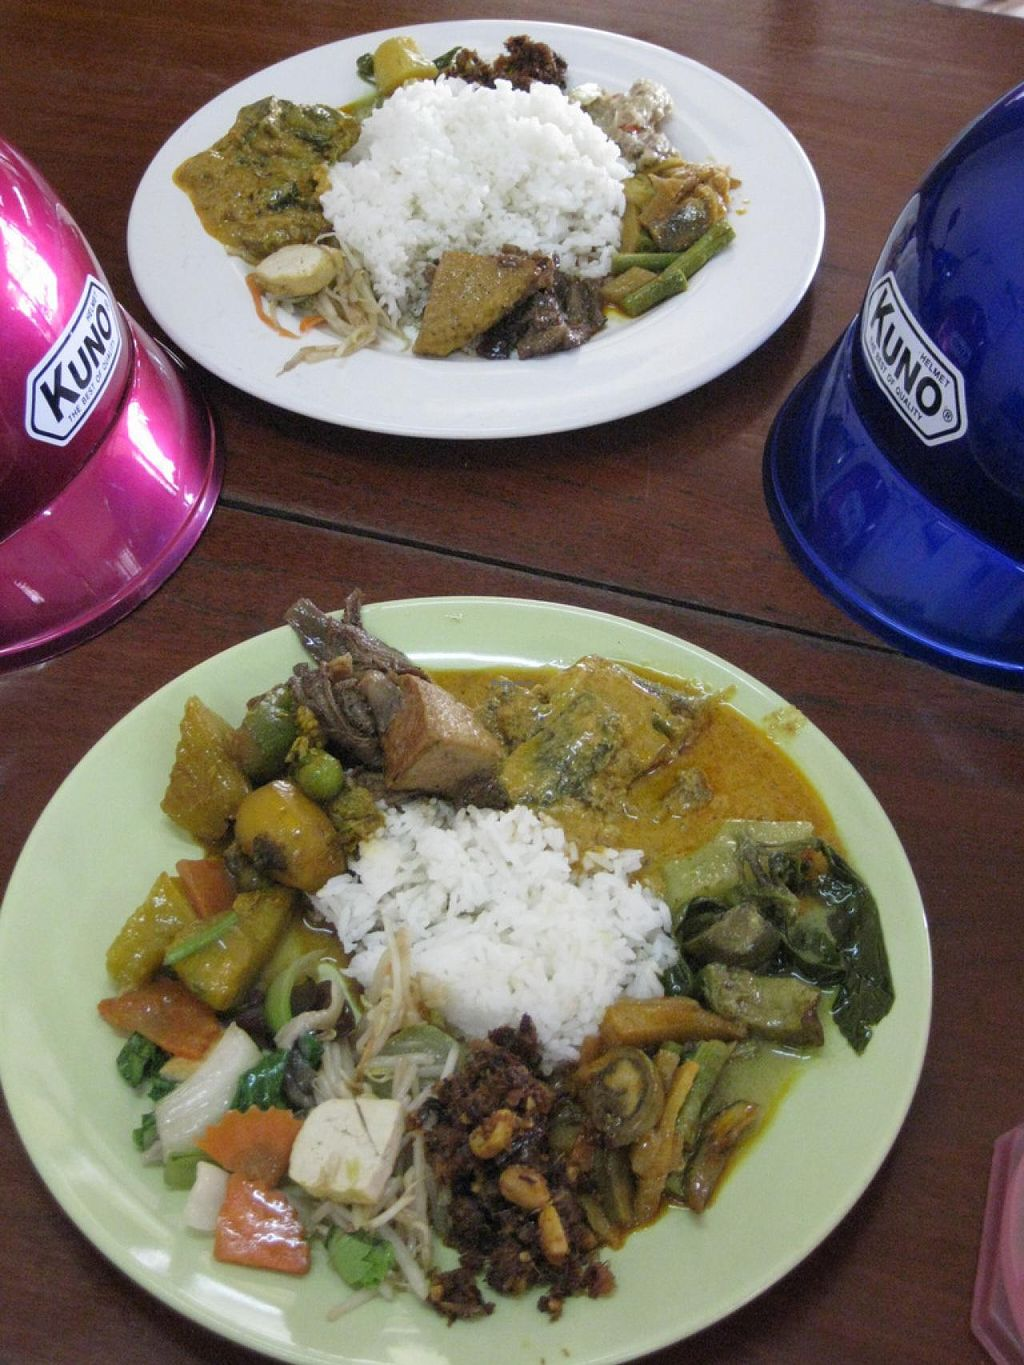 """Photo of Vegetarian Food - Patong  by <a href=""""/members/profile/KasperHansen"""">KasperHansen</a> <br/>I had to try all the dishes - here is the first attempt. Just a little of each - yes thank you very much :-) Loved it! <br/> January 7, 2014  - <a href='/contact/abuse/image/27964/62027'>Report</a>"""